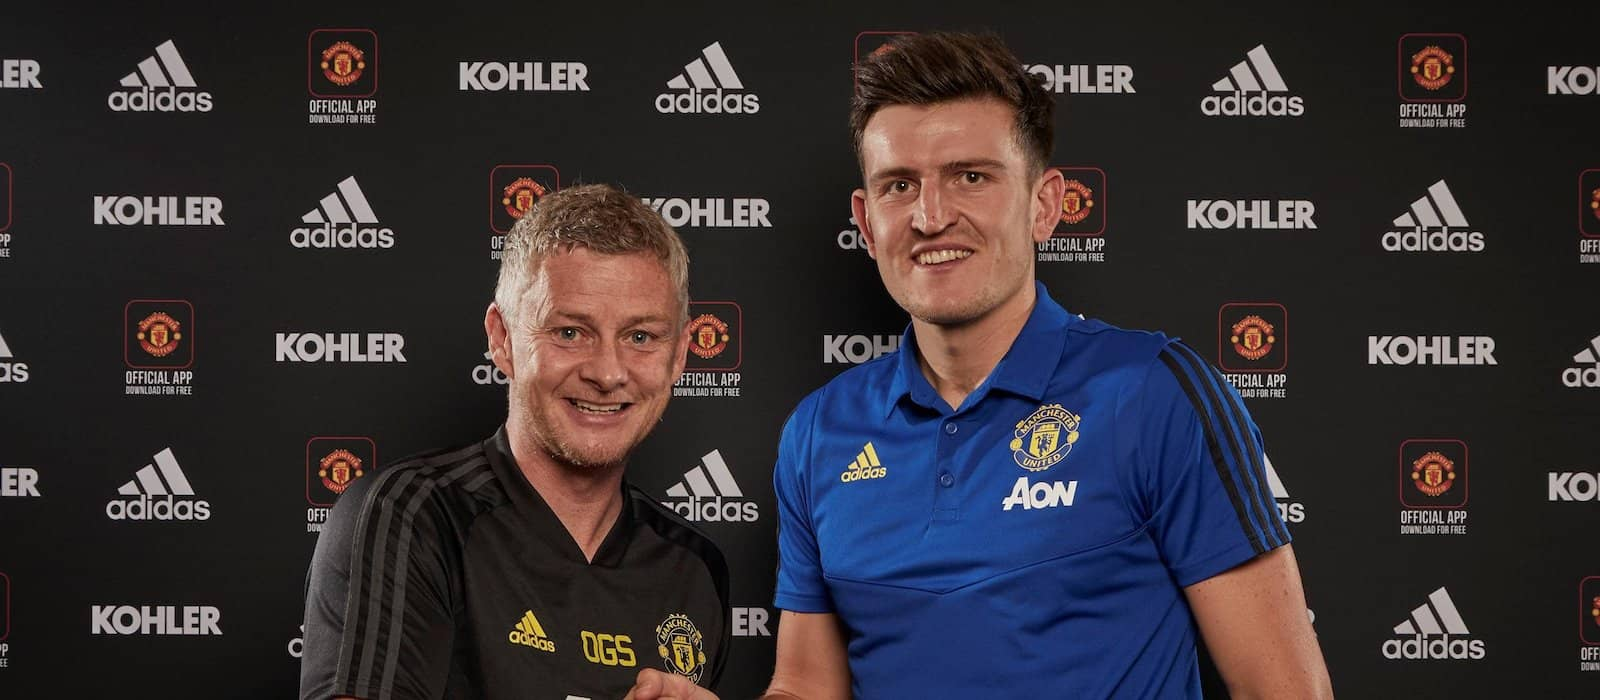 Ole Gunnar Solskjaer already surprised by Harry Maguire at Manchester United